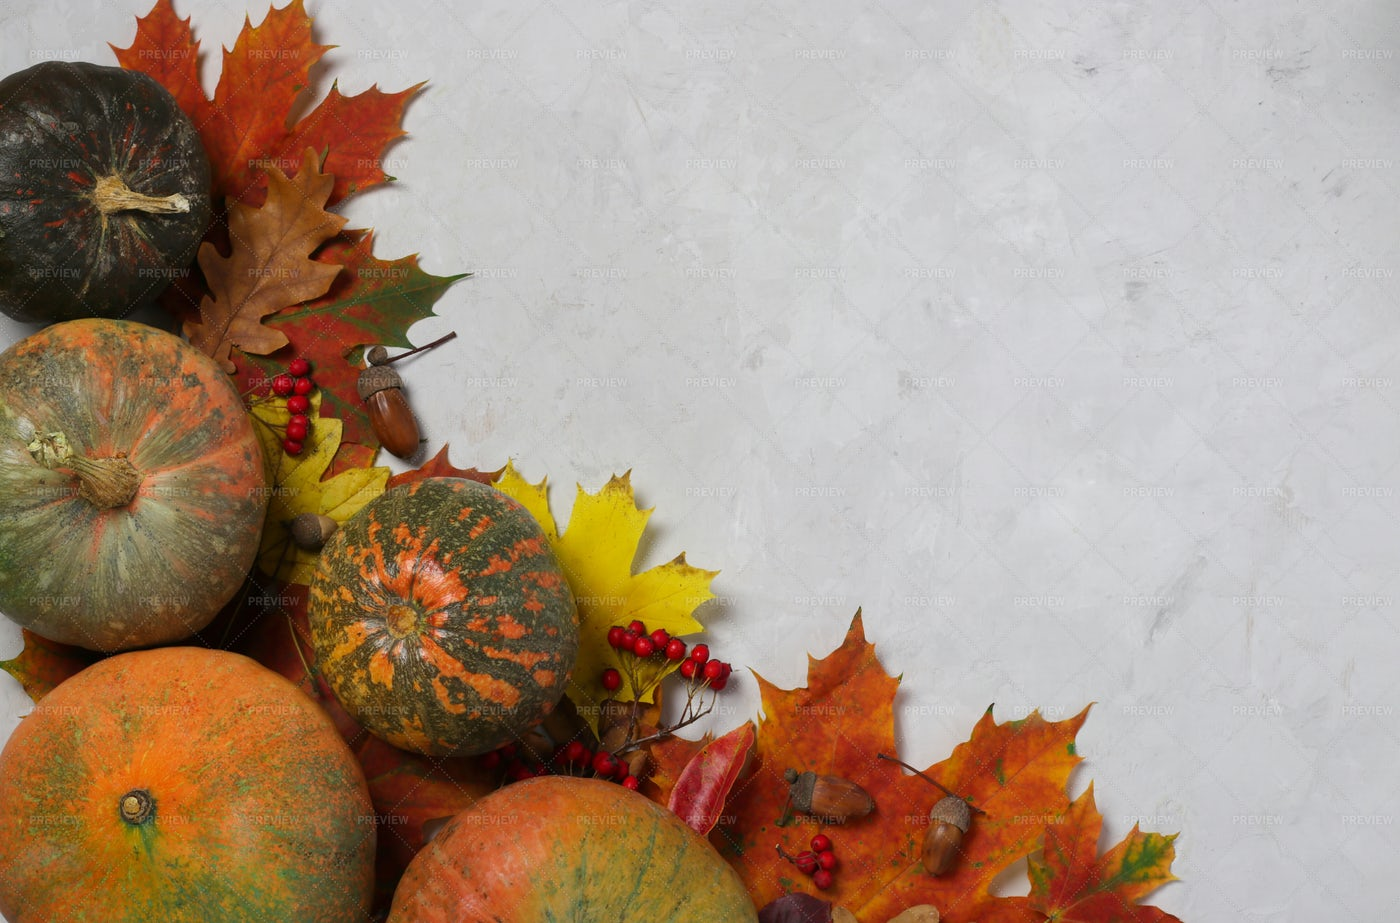 Banner With Bright Autumn Leaves: Stock Photos